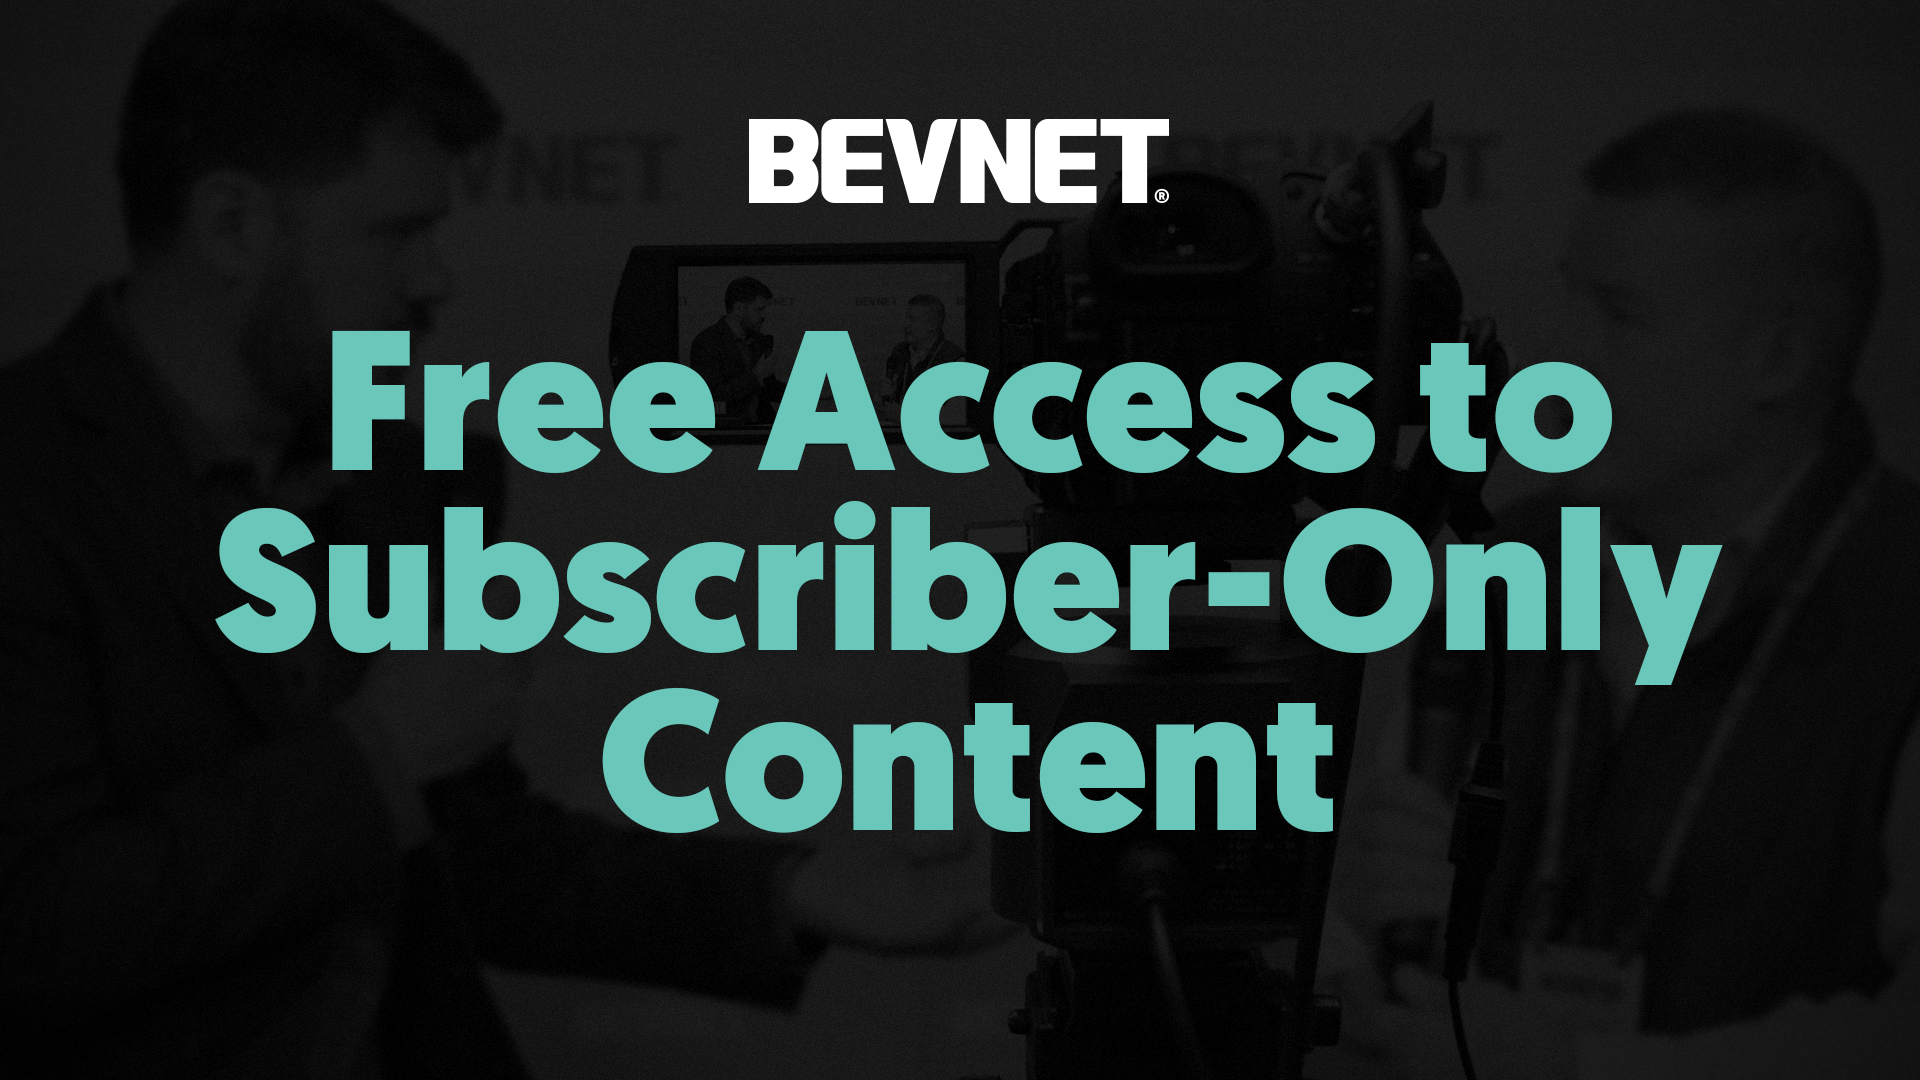 BevNET: Free Access to Subscriber-Only Content